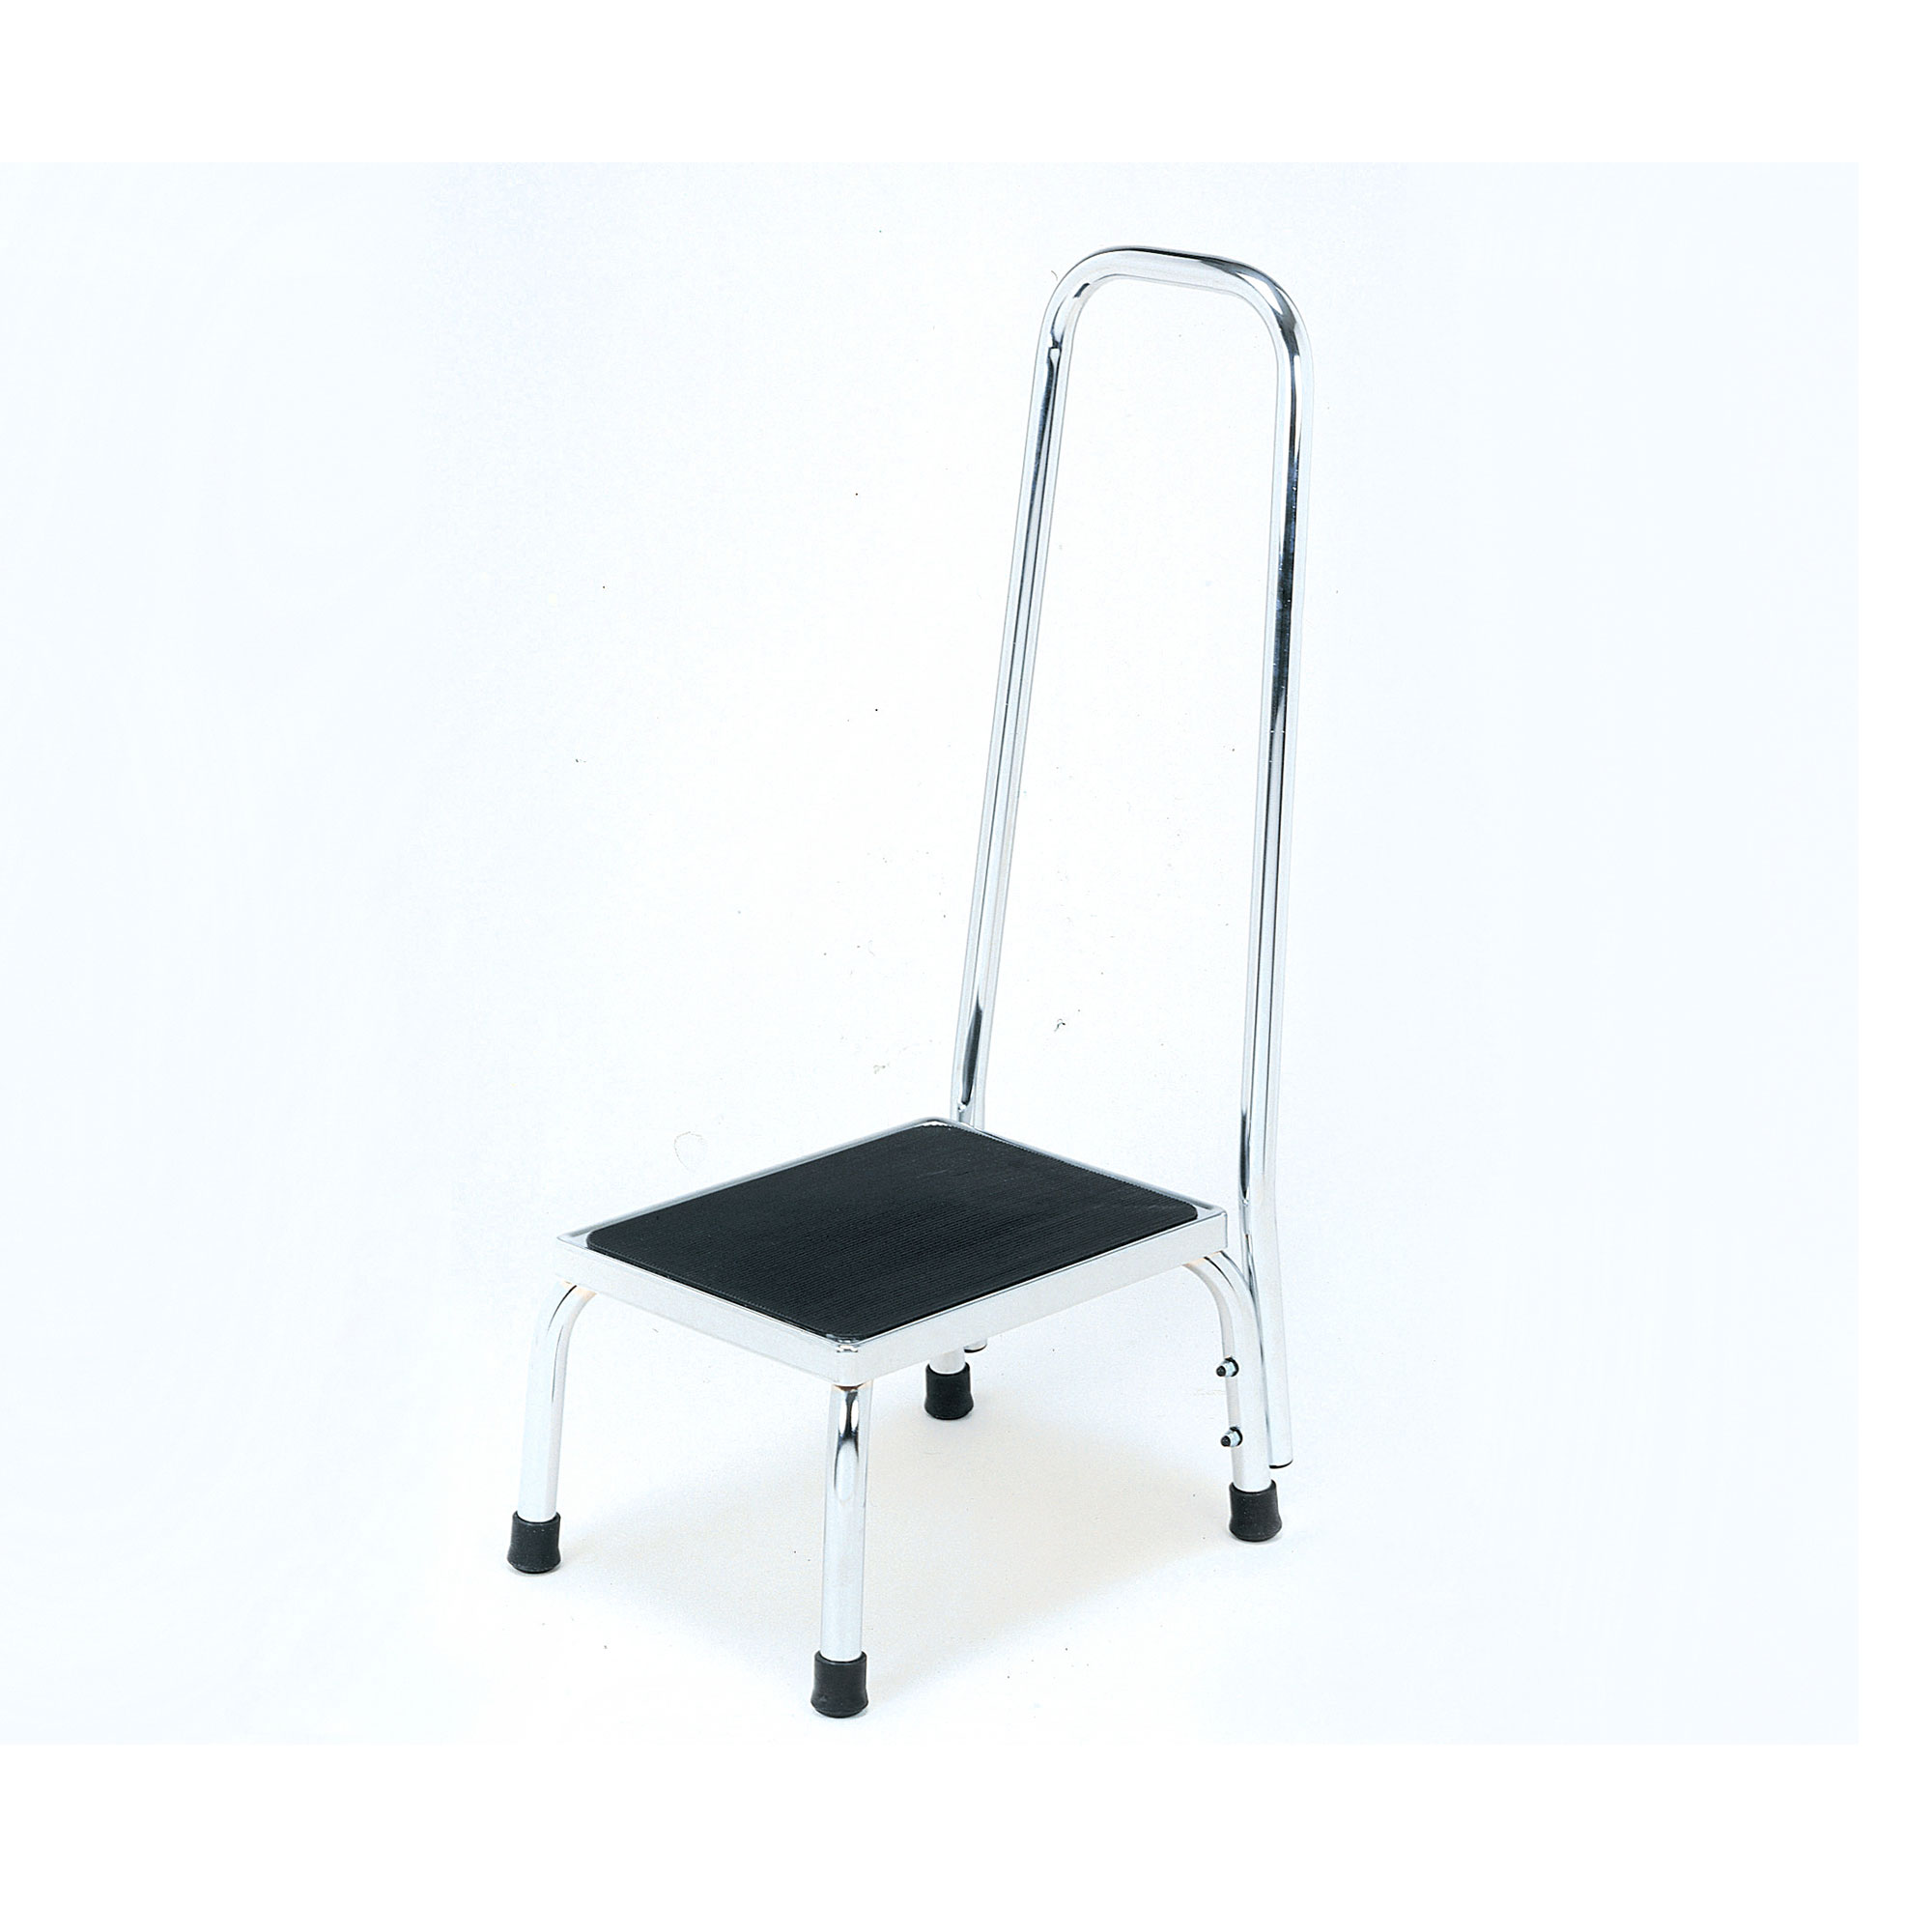 Bath Step Stool With Handrail Step Stool With Handrail